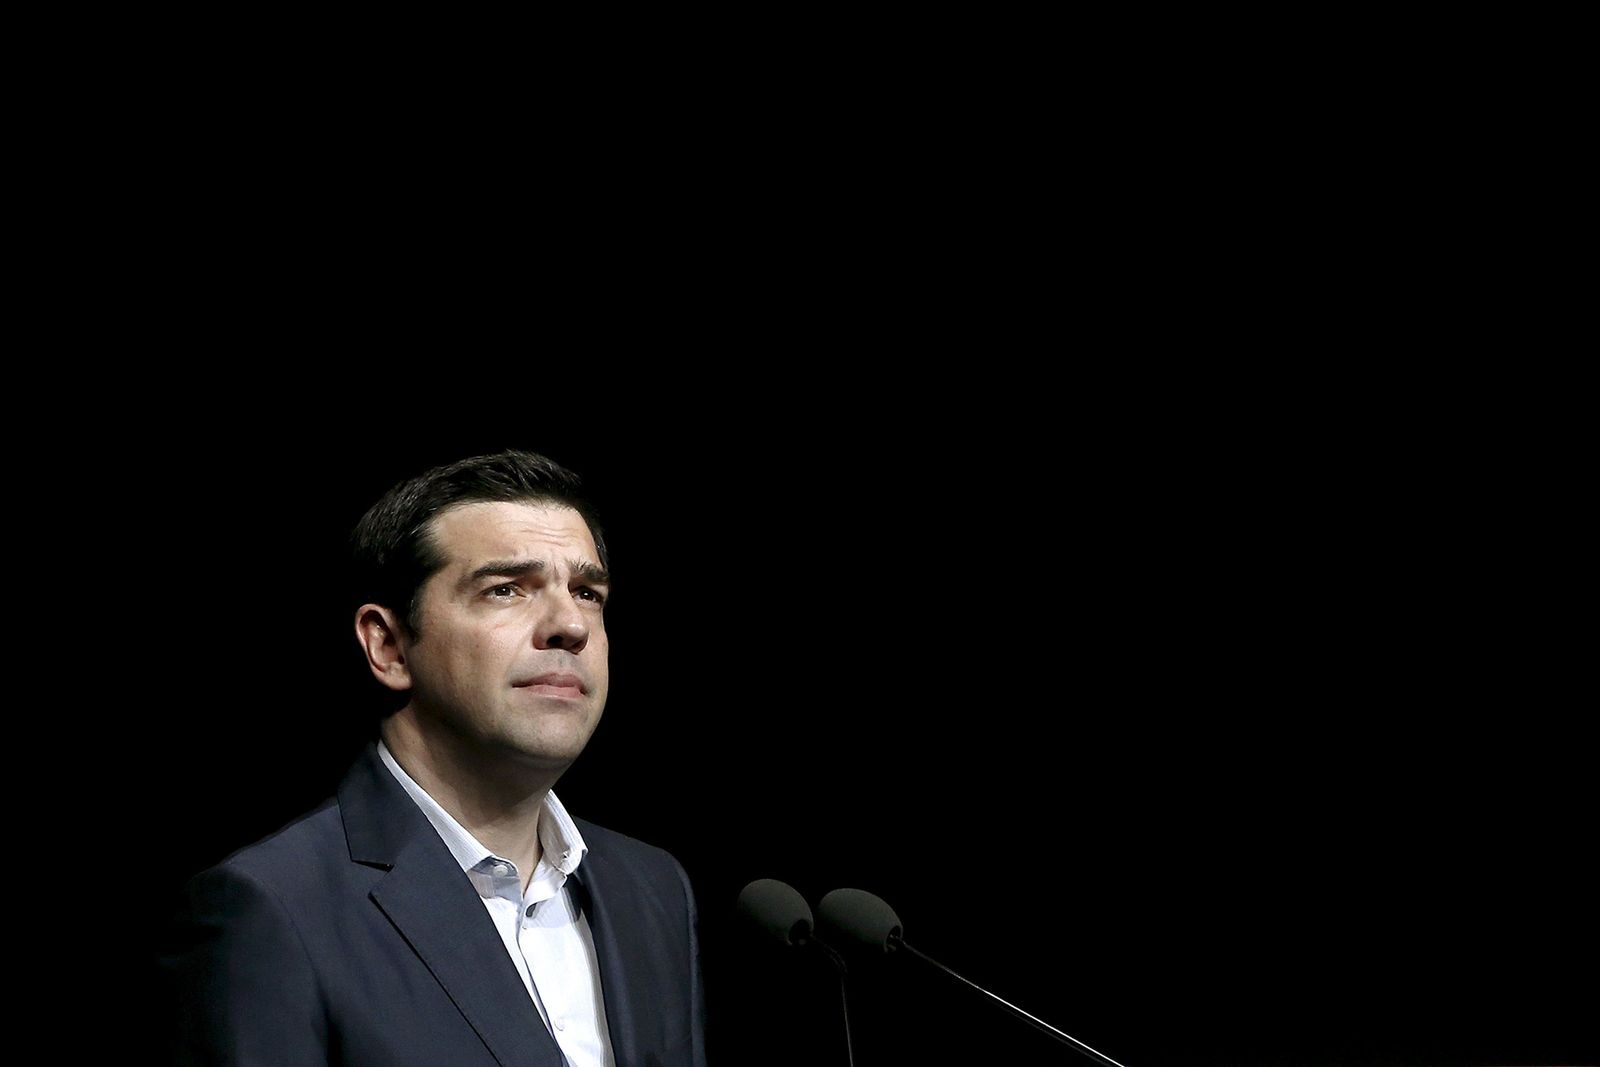 EUROZONE-GREECE/TSIPRAS